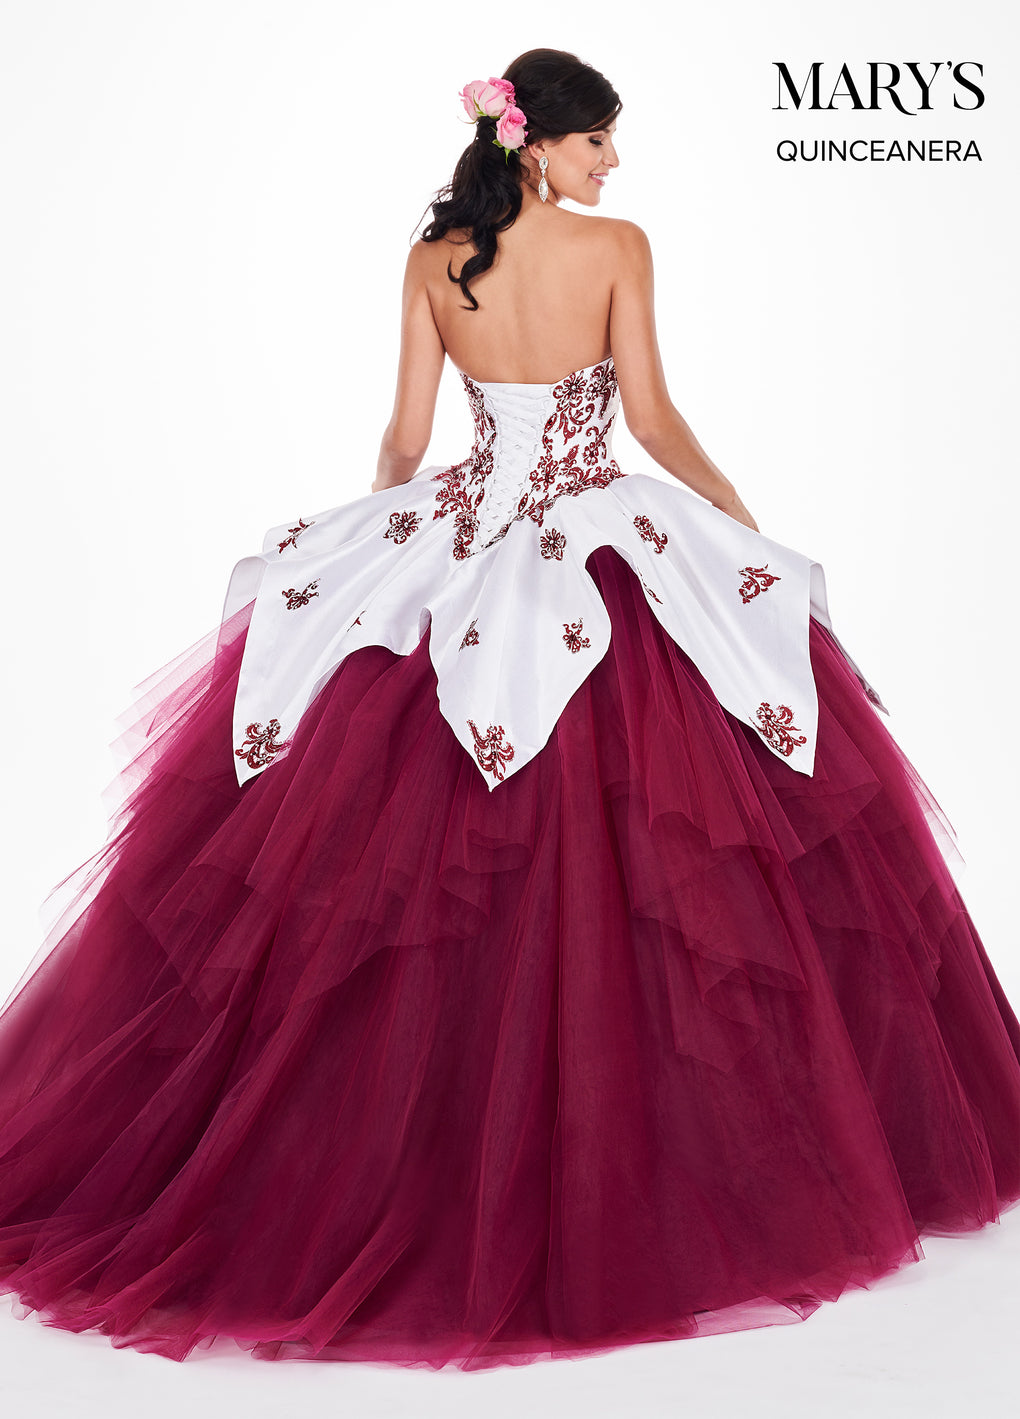 Marys Quinceanera Dresses in White/Merlot, White/Rum Pink, or White/Baby Blue Color